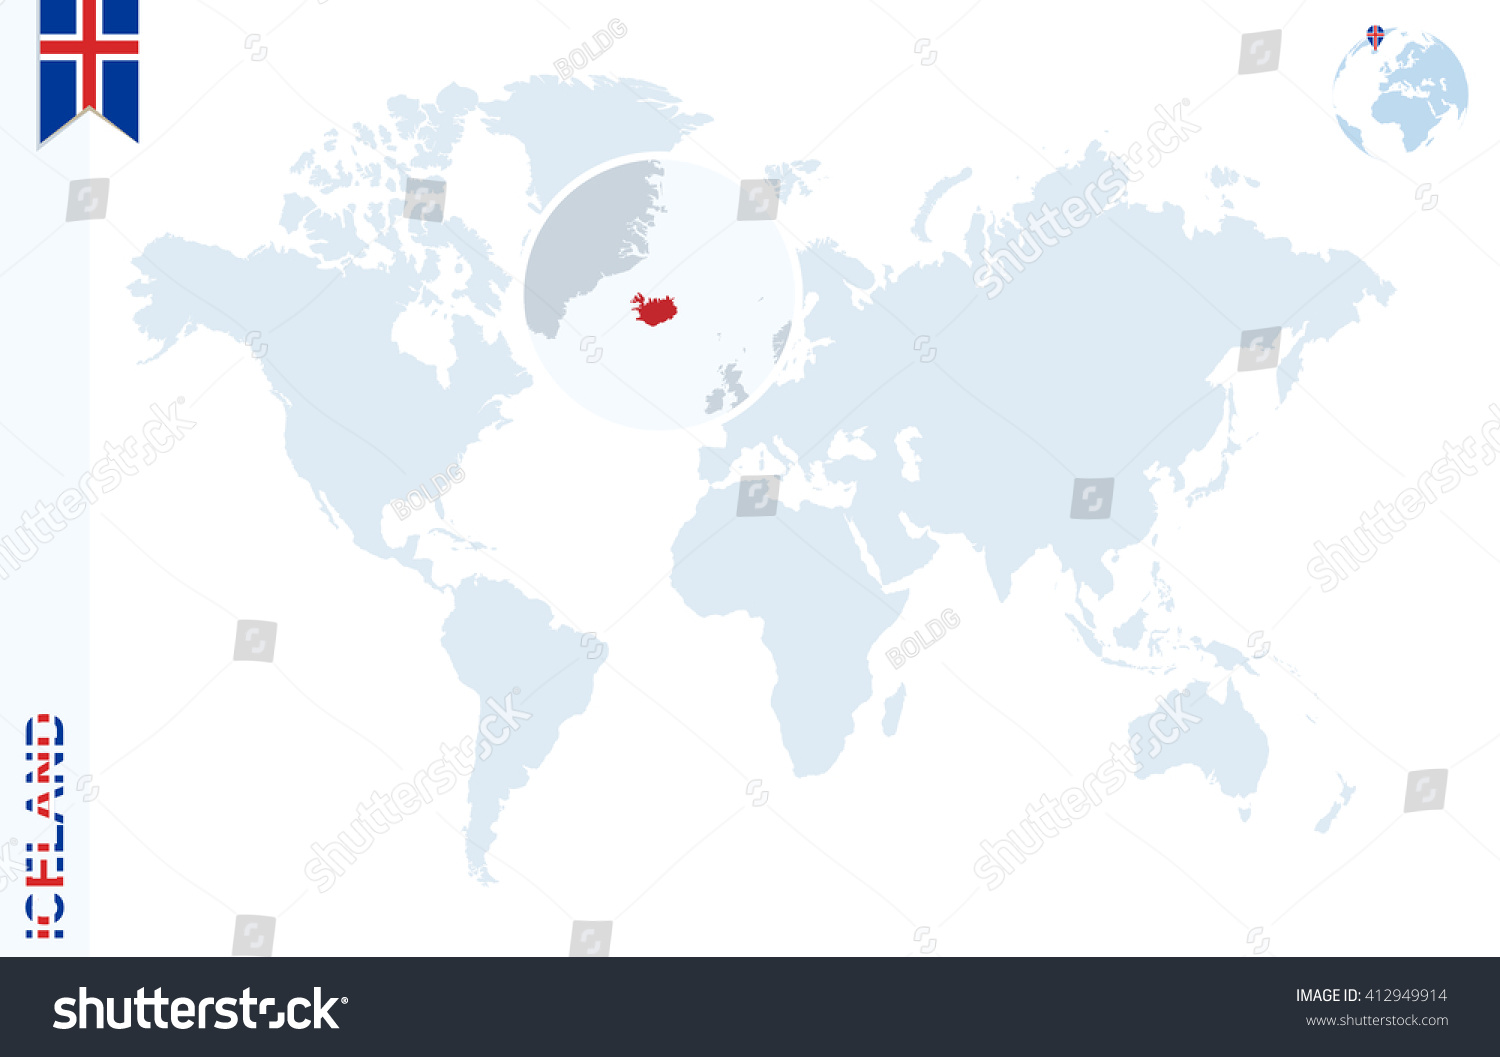 World map magnifying on iceland blue stock vector hd royalty free world map with magnifying on iceland blue earth globe with iceland flag pin zoom gumiabroncs Gallery